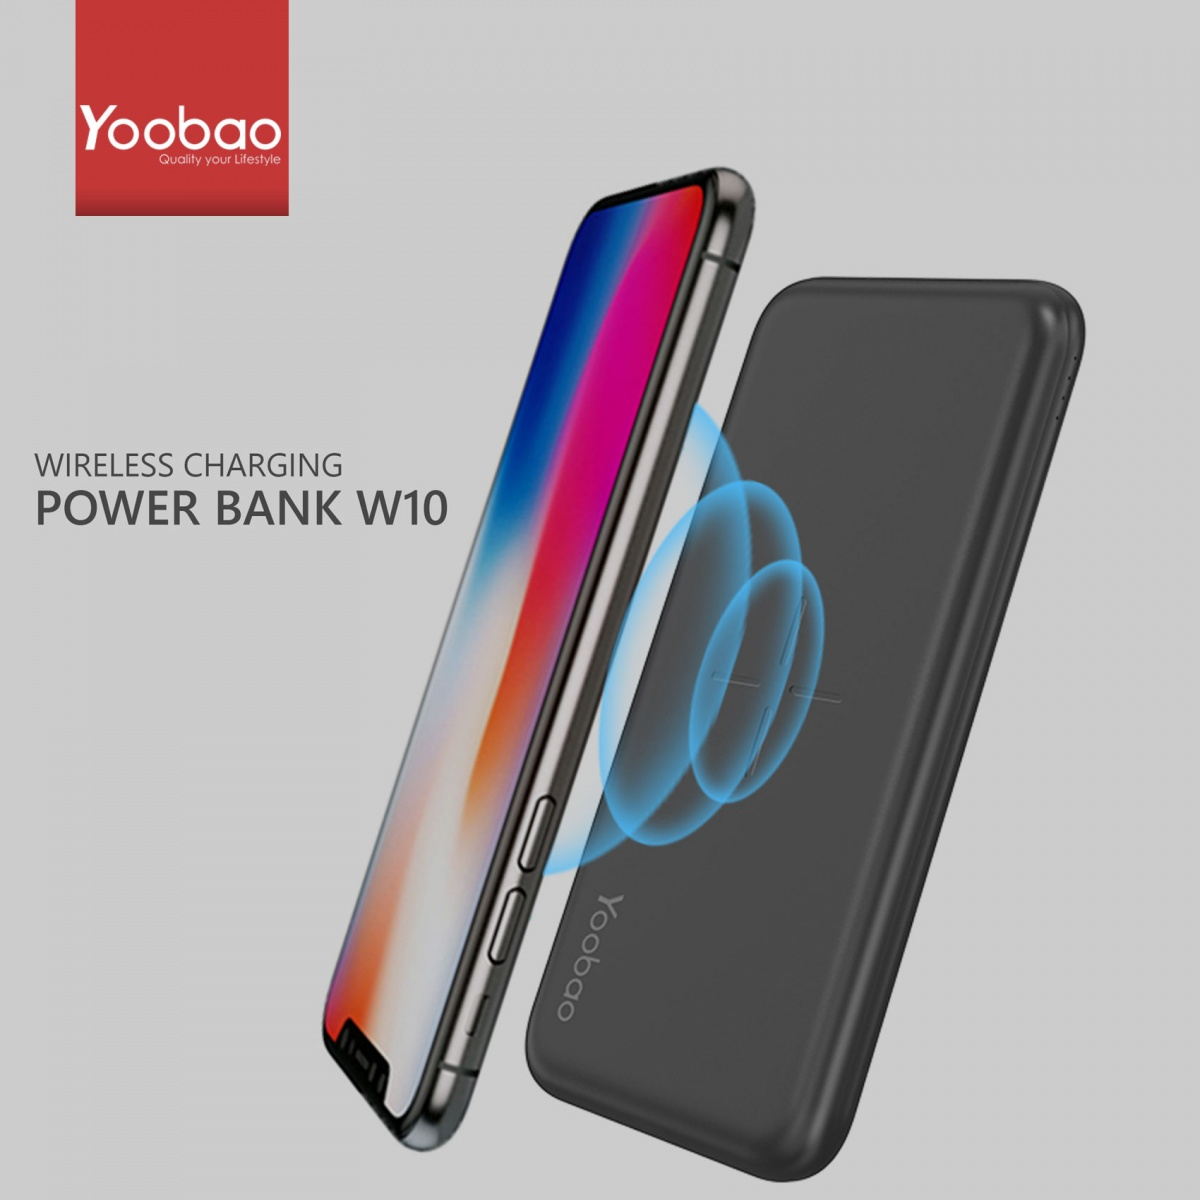 Yoobao W10 Wireless Power Bank - Black